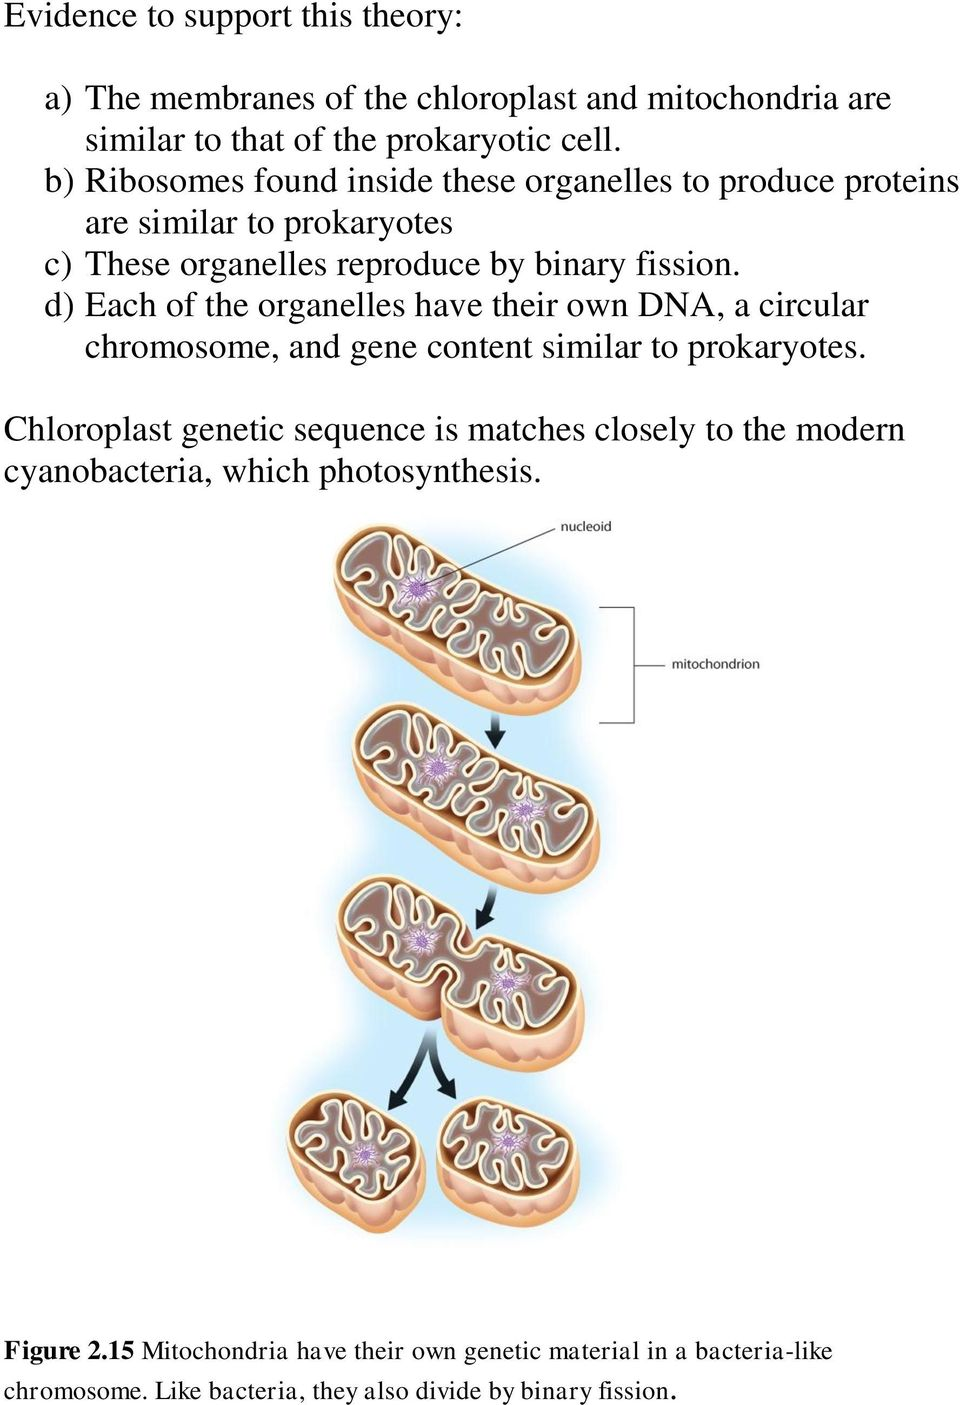 d) Each of the organelles have their own DNA, a circular chromosome, and gene content similar to prokaryotes.